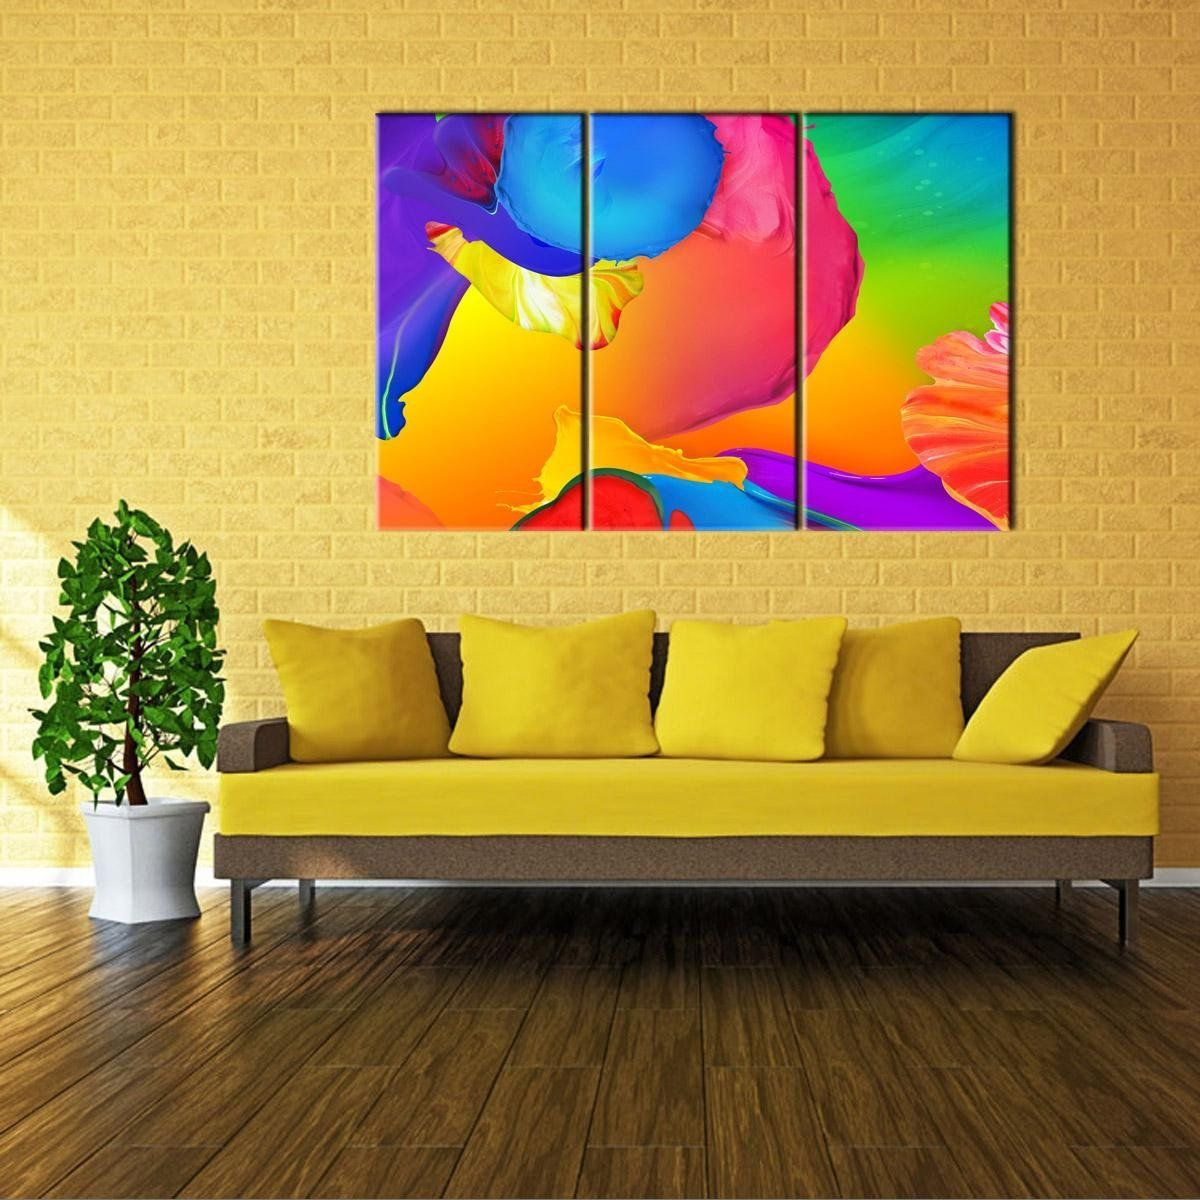 Graffiti art for your home - Rain Queen Hand Painted Colorful Graffiti Painting Wall Art For Kids Room D Cor Huge Size No